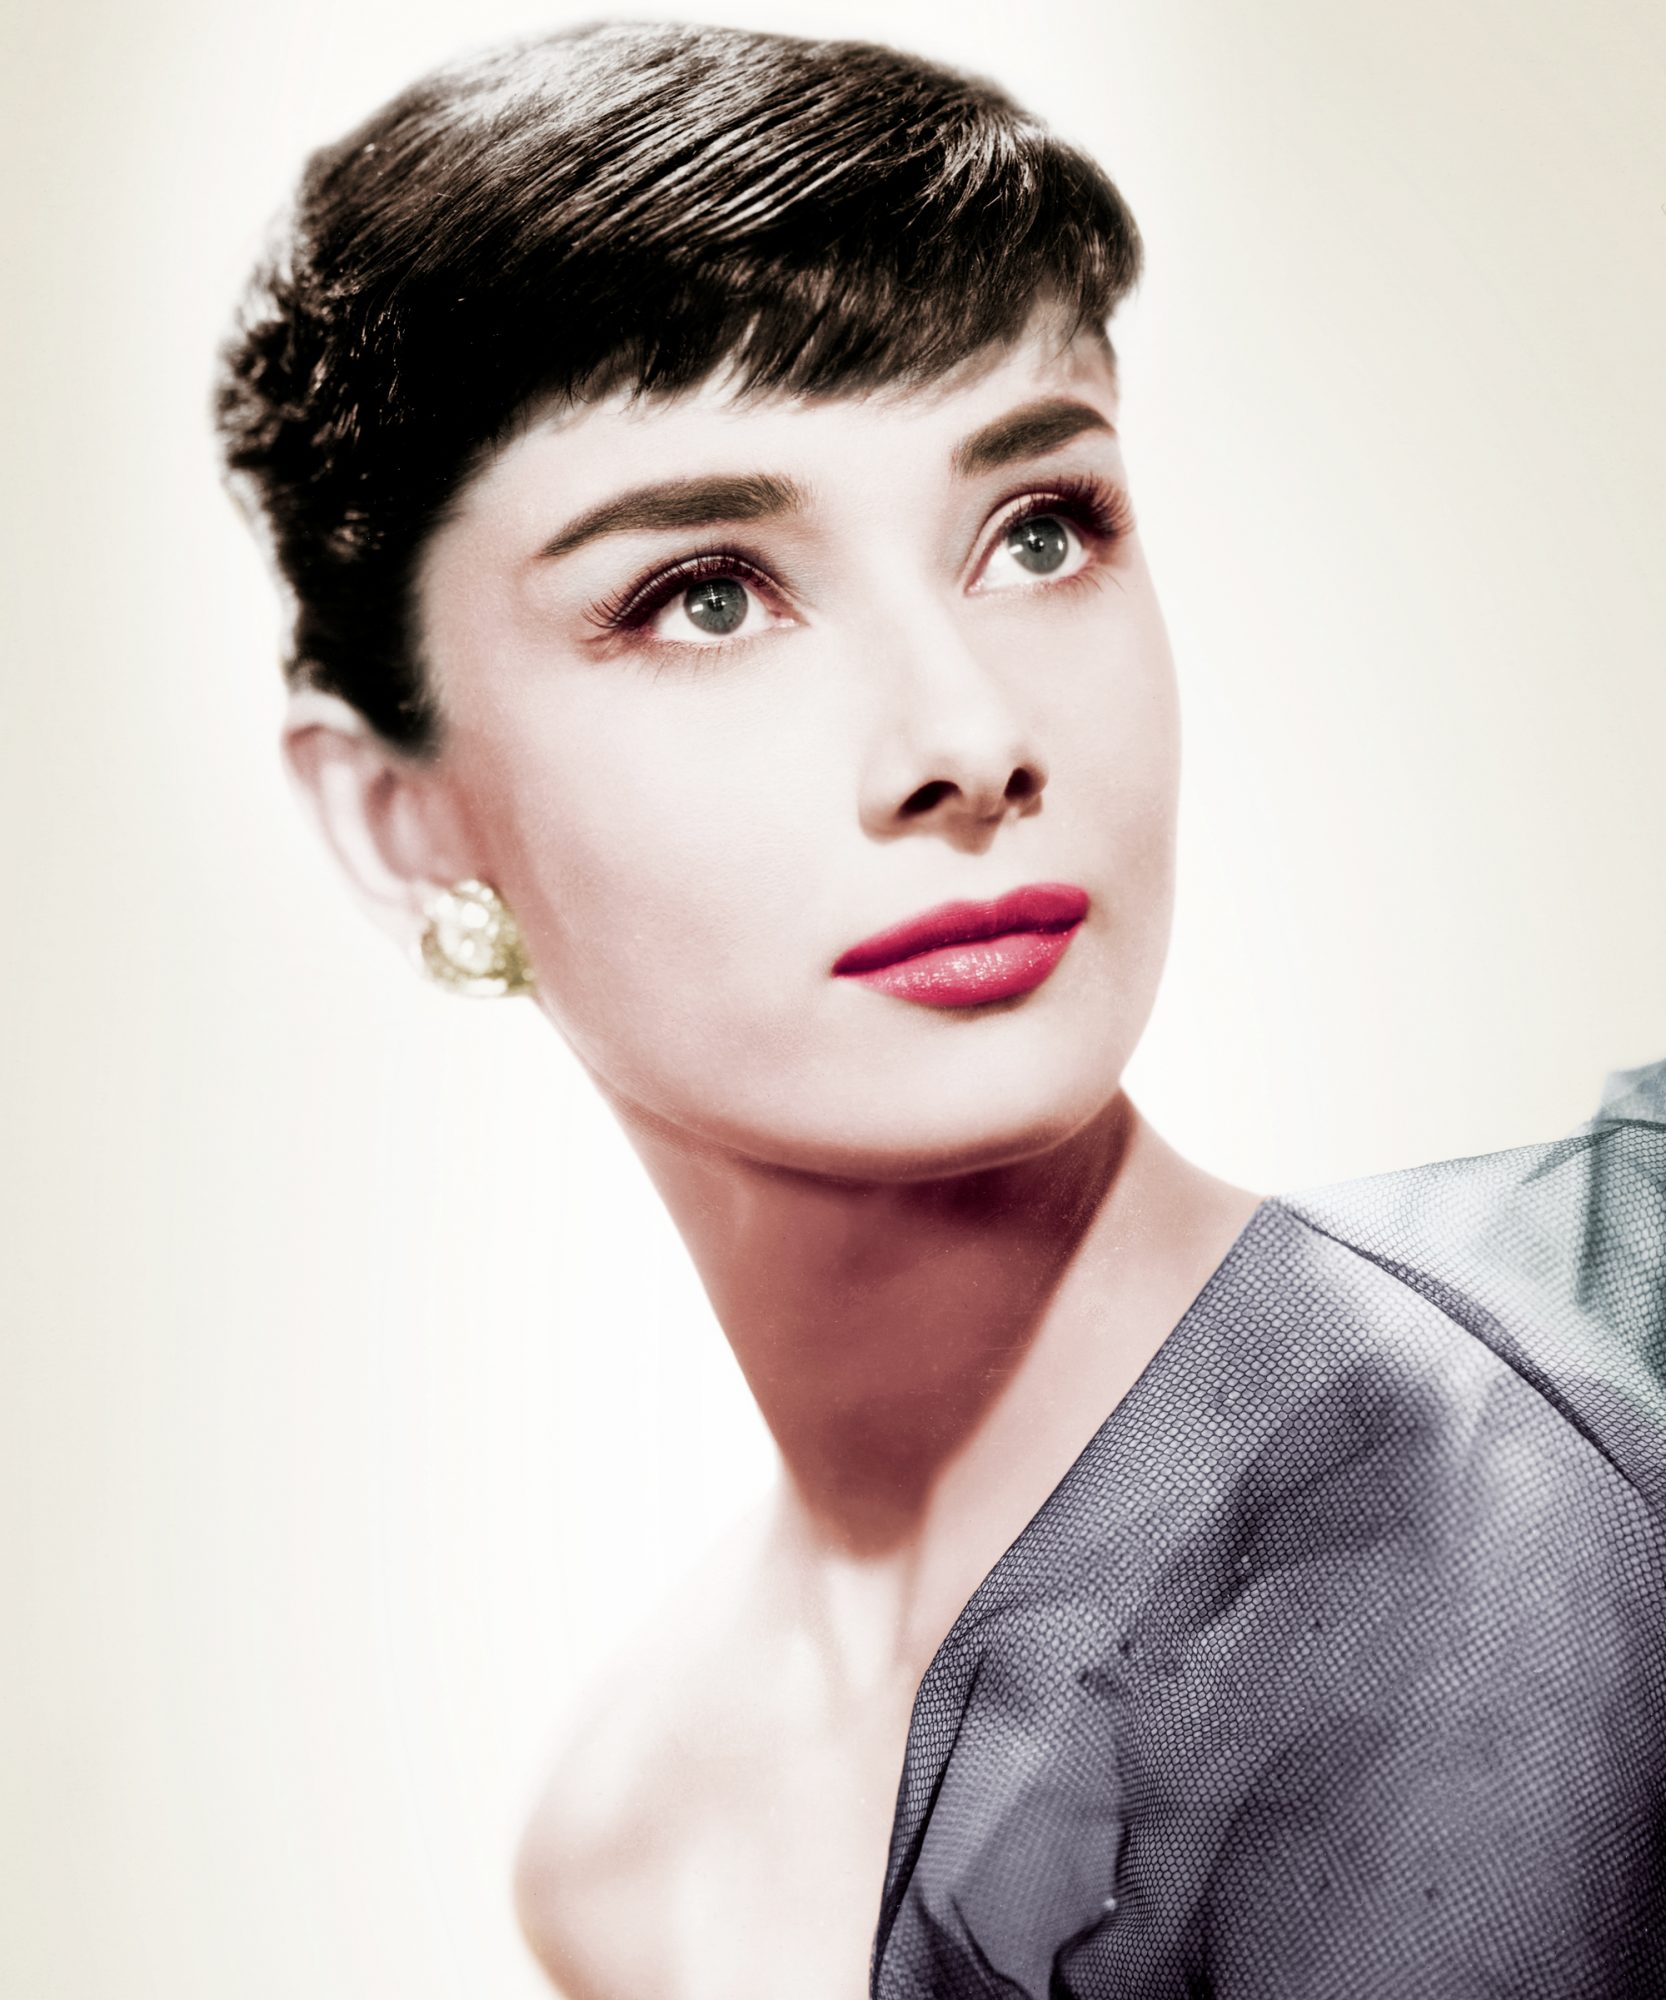 See 12 Iconic Photos of Audrey Hepburn on What Would Have Been Her 87th Birthday